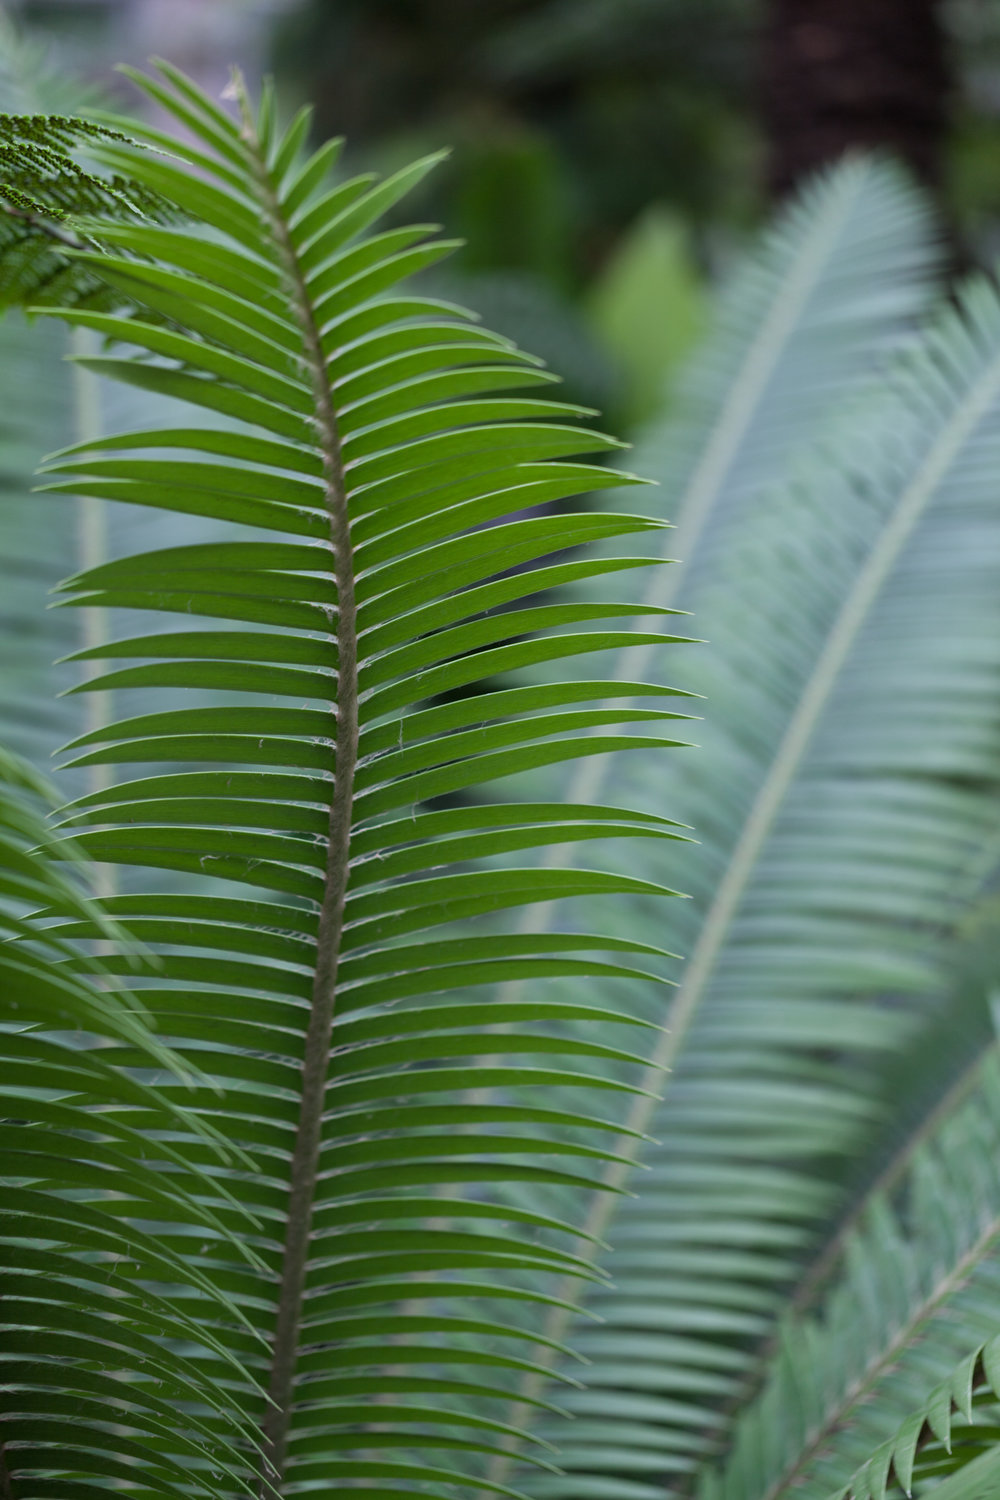 Lincoln-Park-Conservatory-Fern-Room.jpg